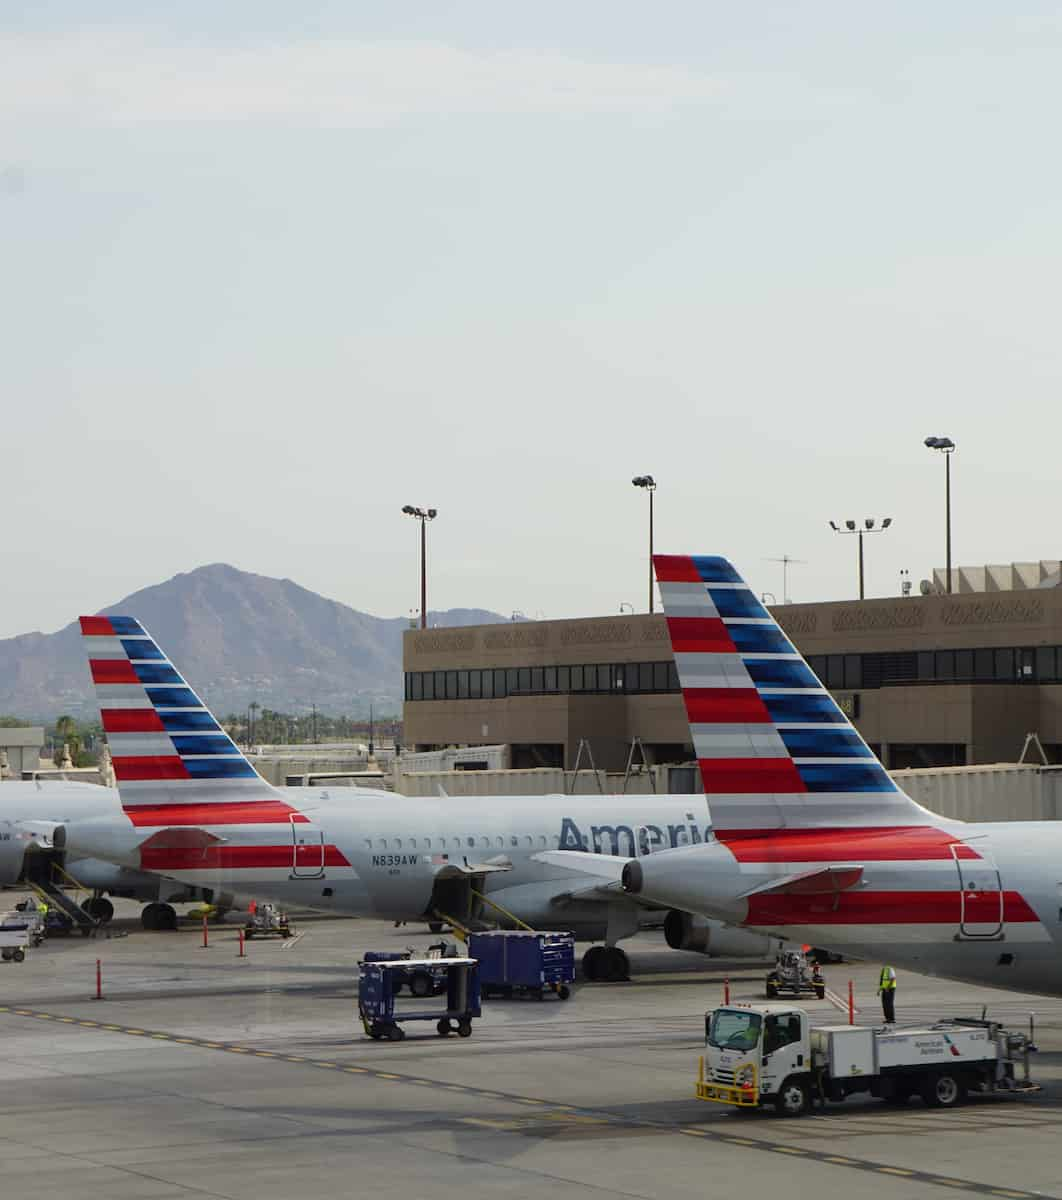 I used 7,500 American Airlines miles to fly to Phoenix to visit Arizona in the summer.